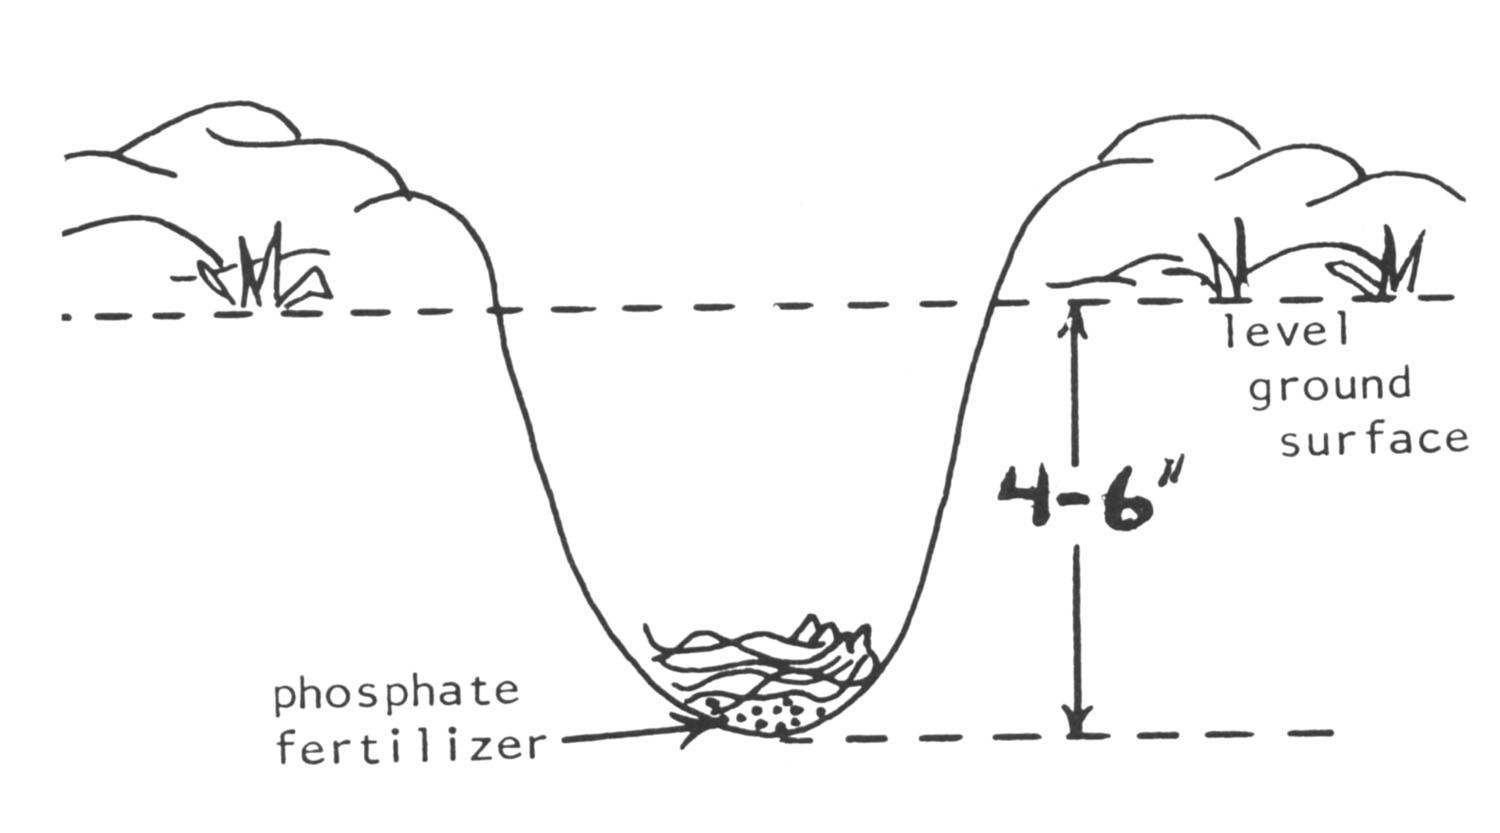 Graphic showing proper planting depth.